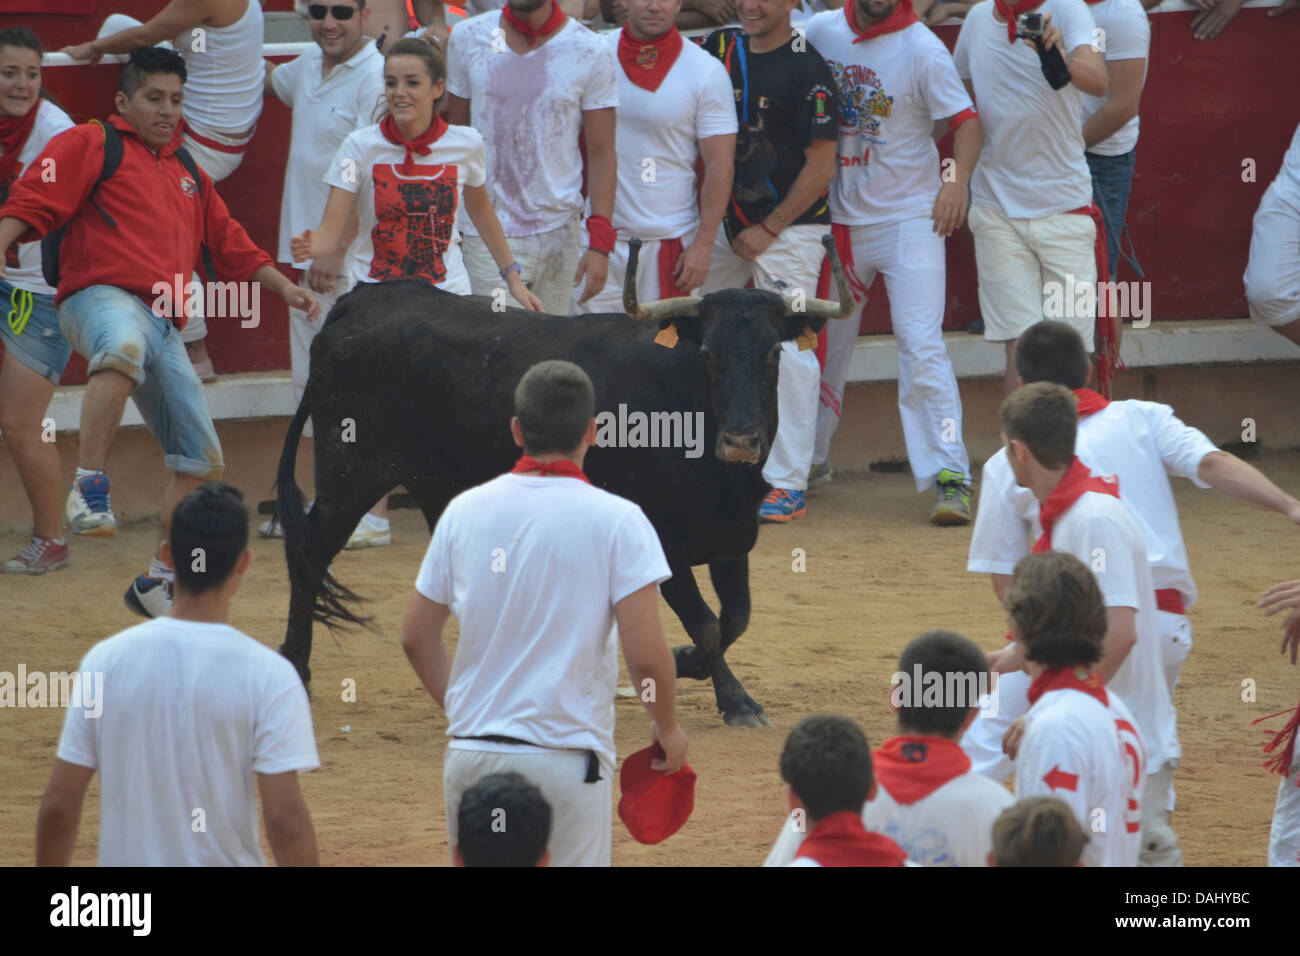 Crowds of people confronting a bull at the annual San Fermin festival in Pamplona, Spain Stock Photo